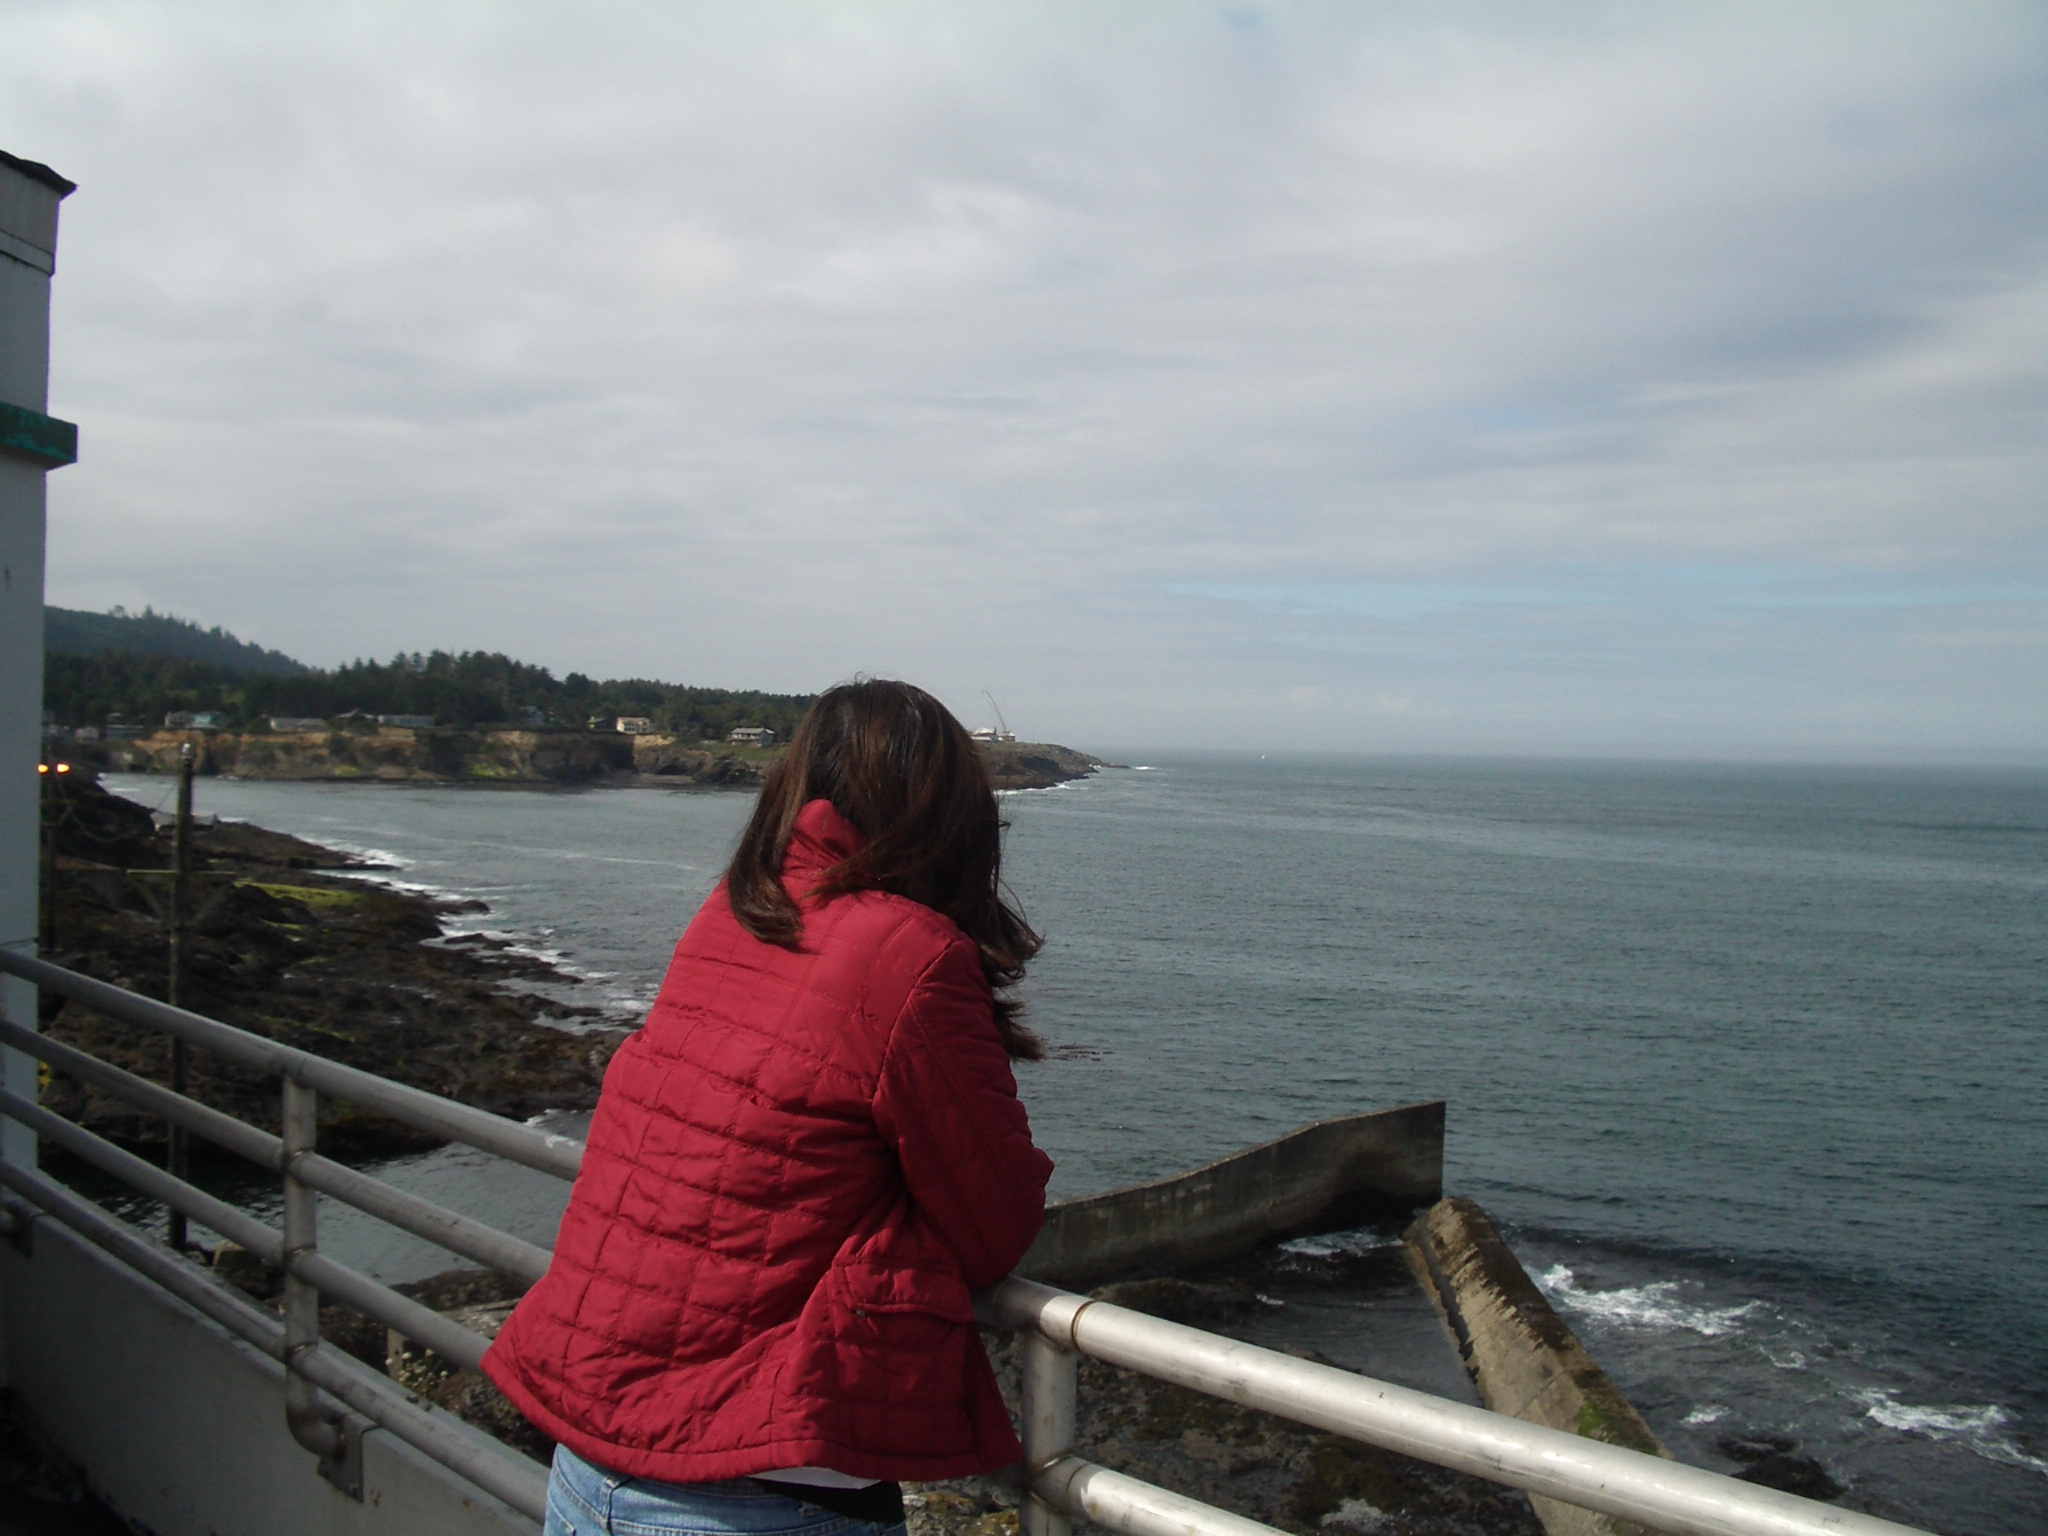 Looking for whales that arent there